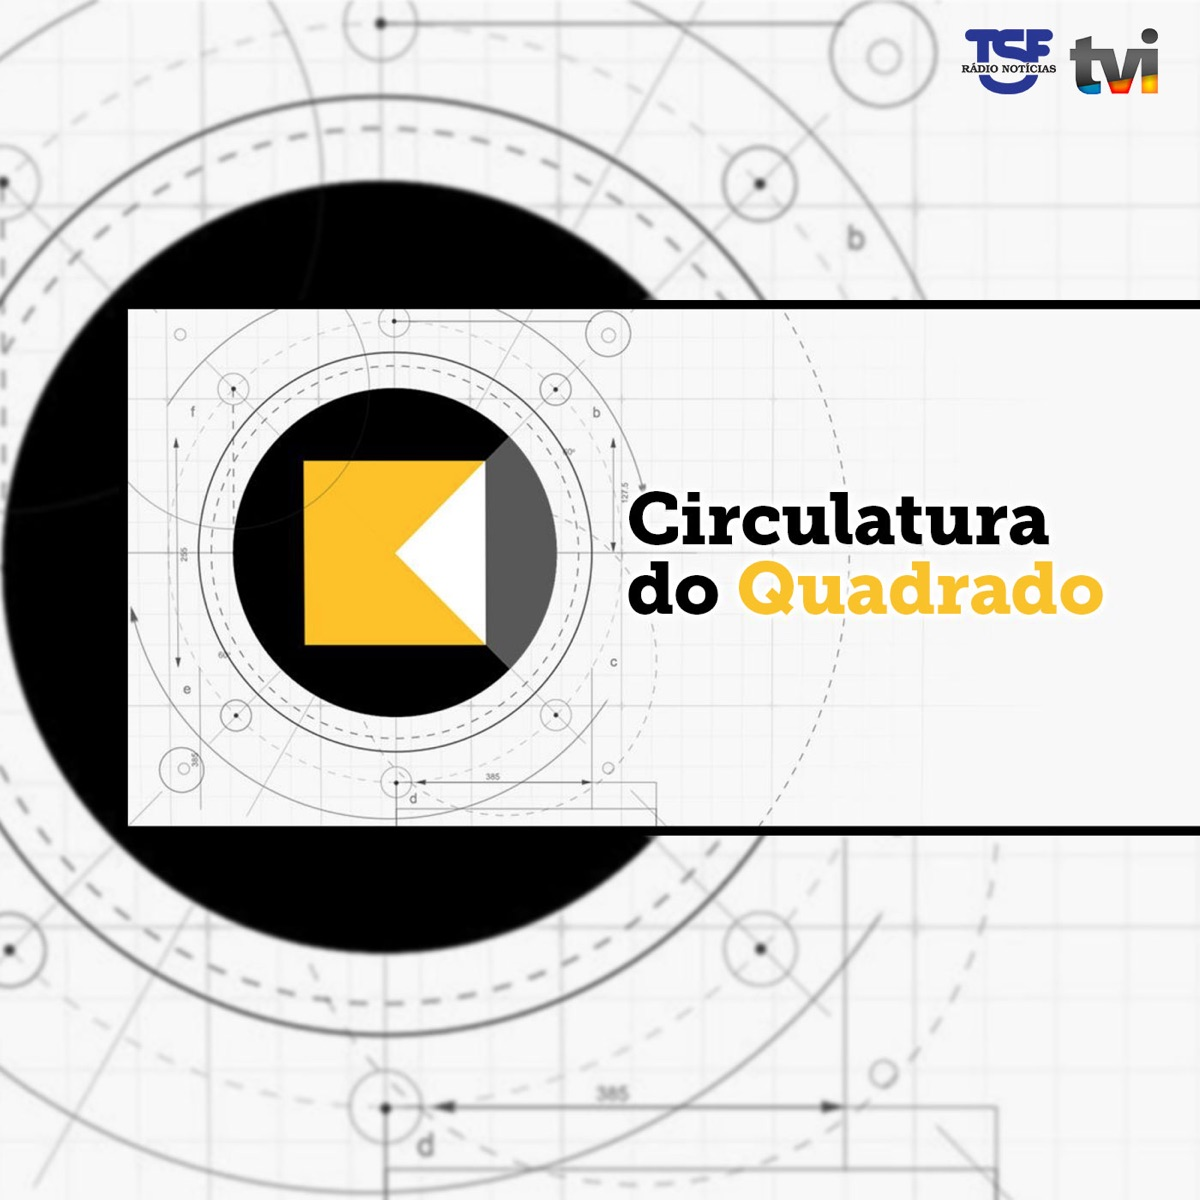 Circulatura do Quadrado - 29 de Abril 2020